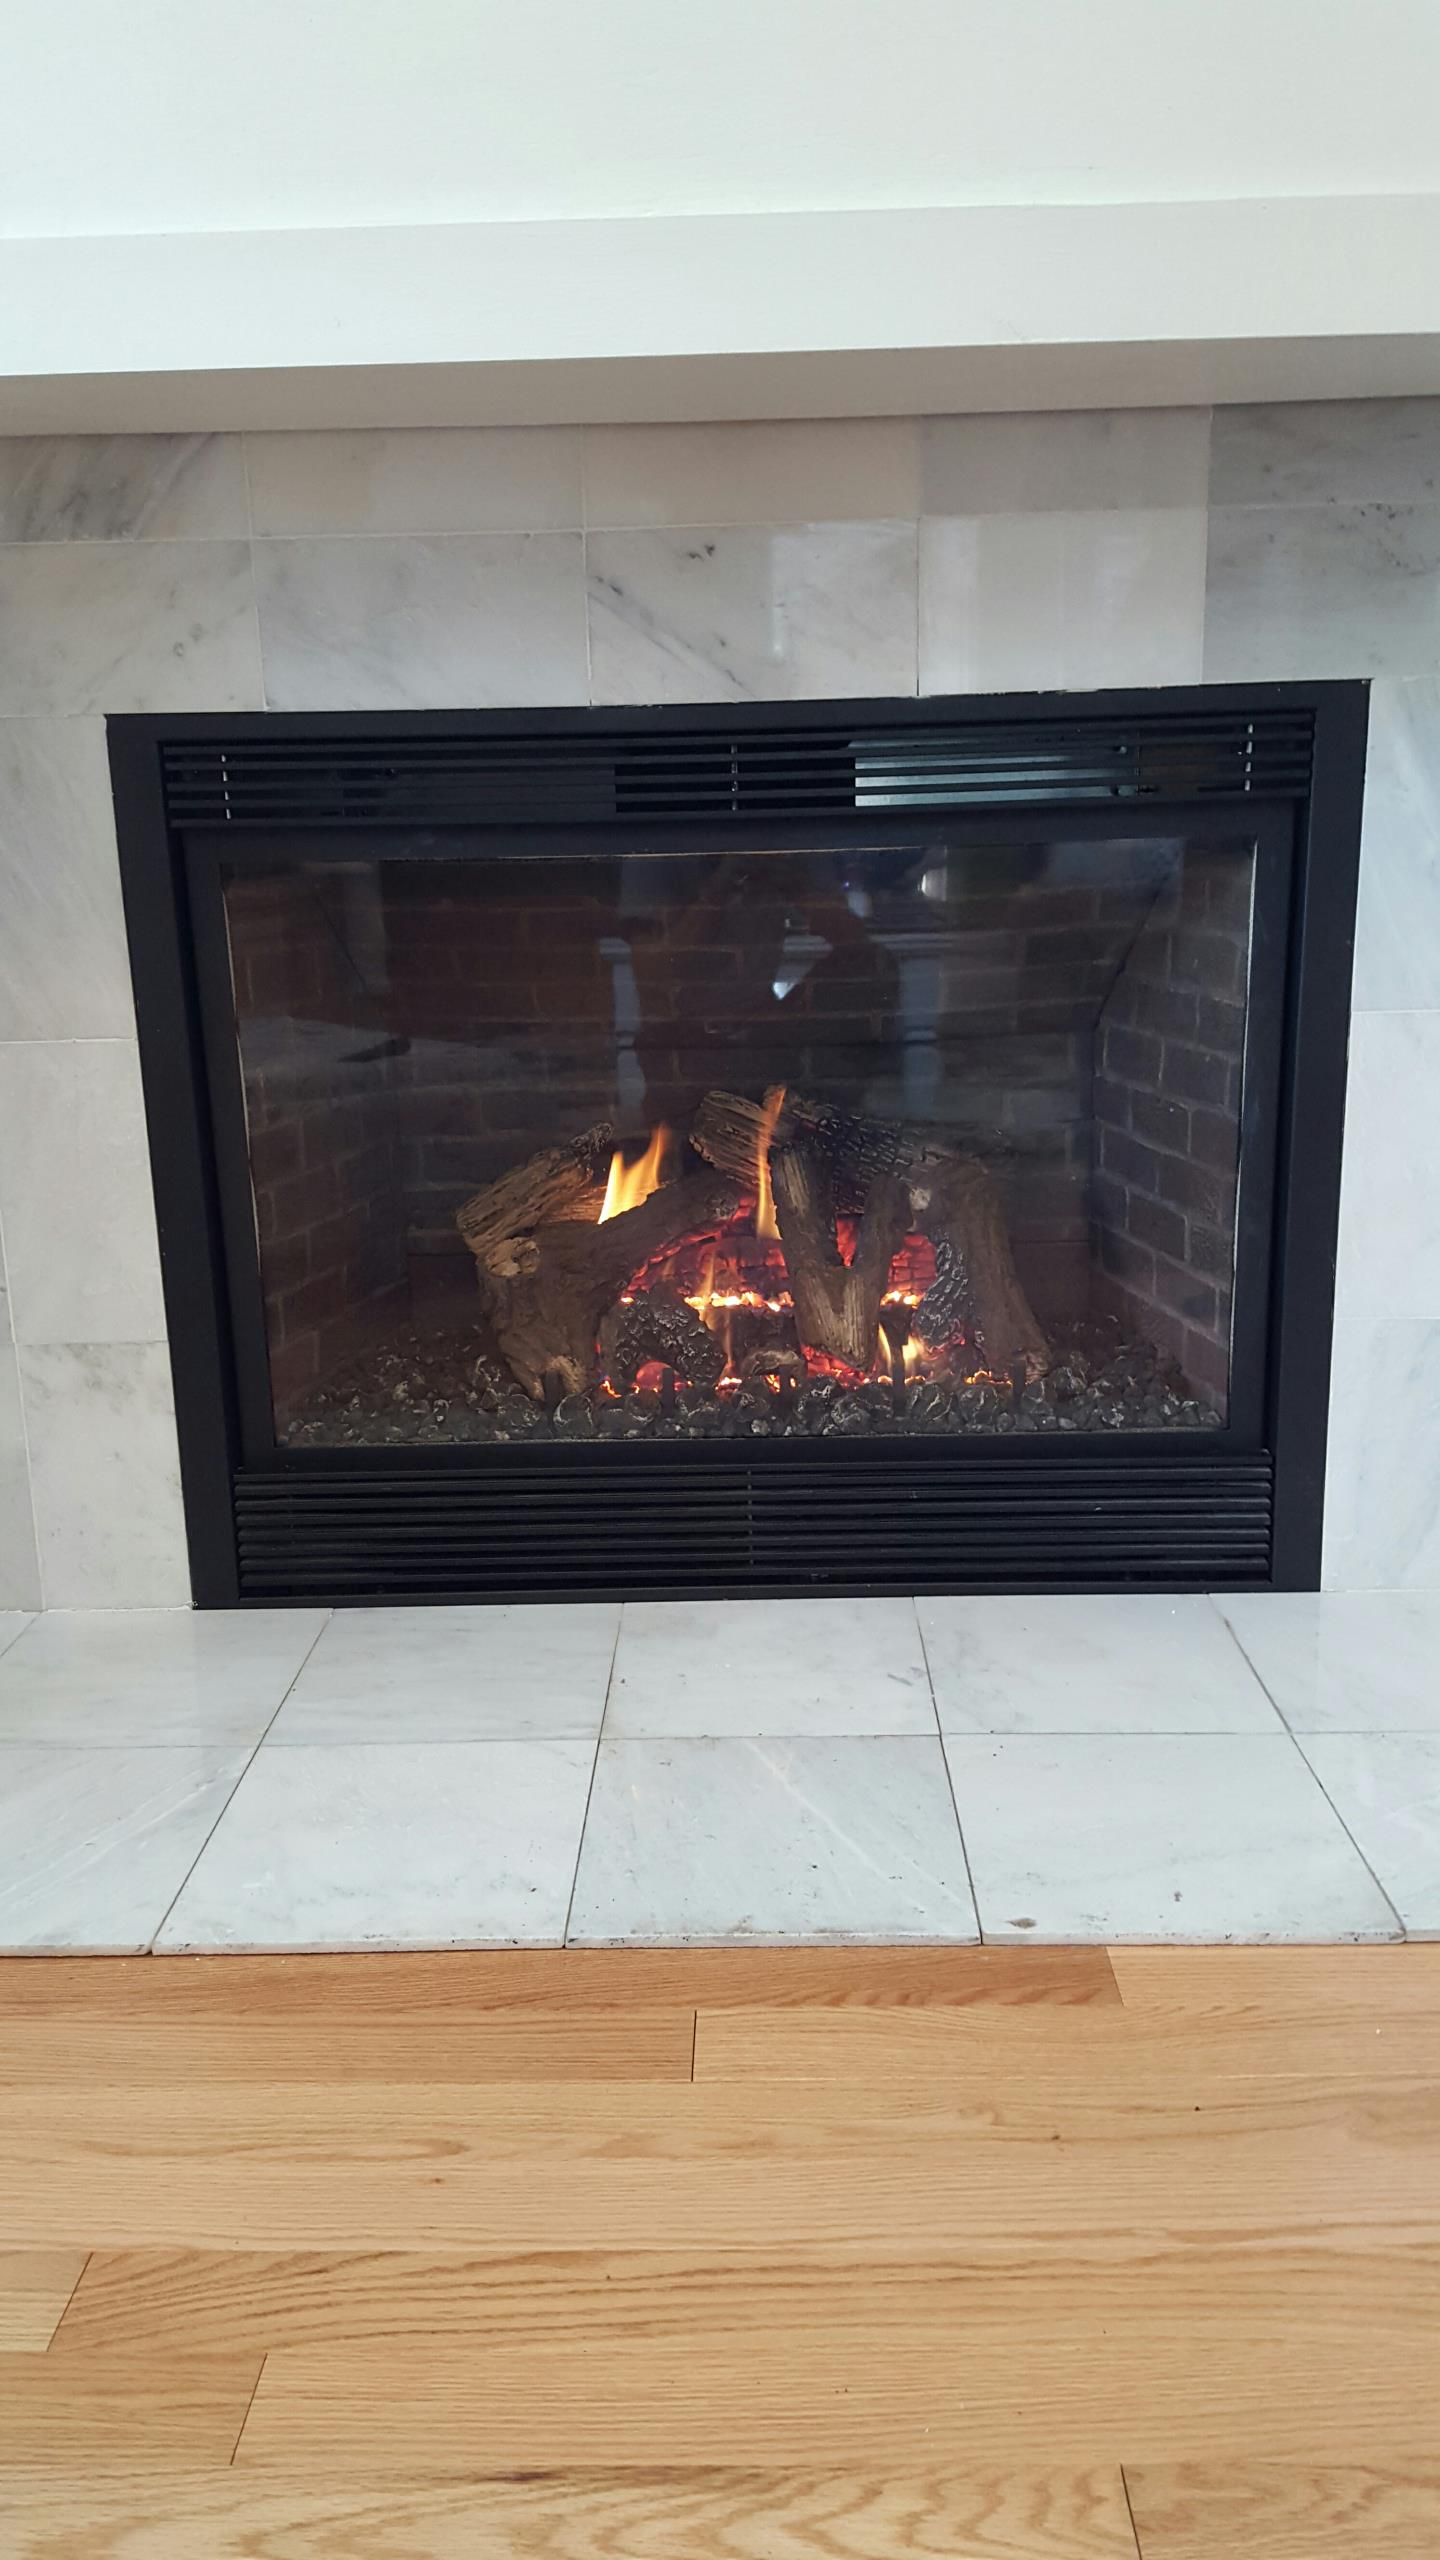 Hanover, MD - Mendota gas fireplace insert & gas logs installation repair service call.